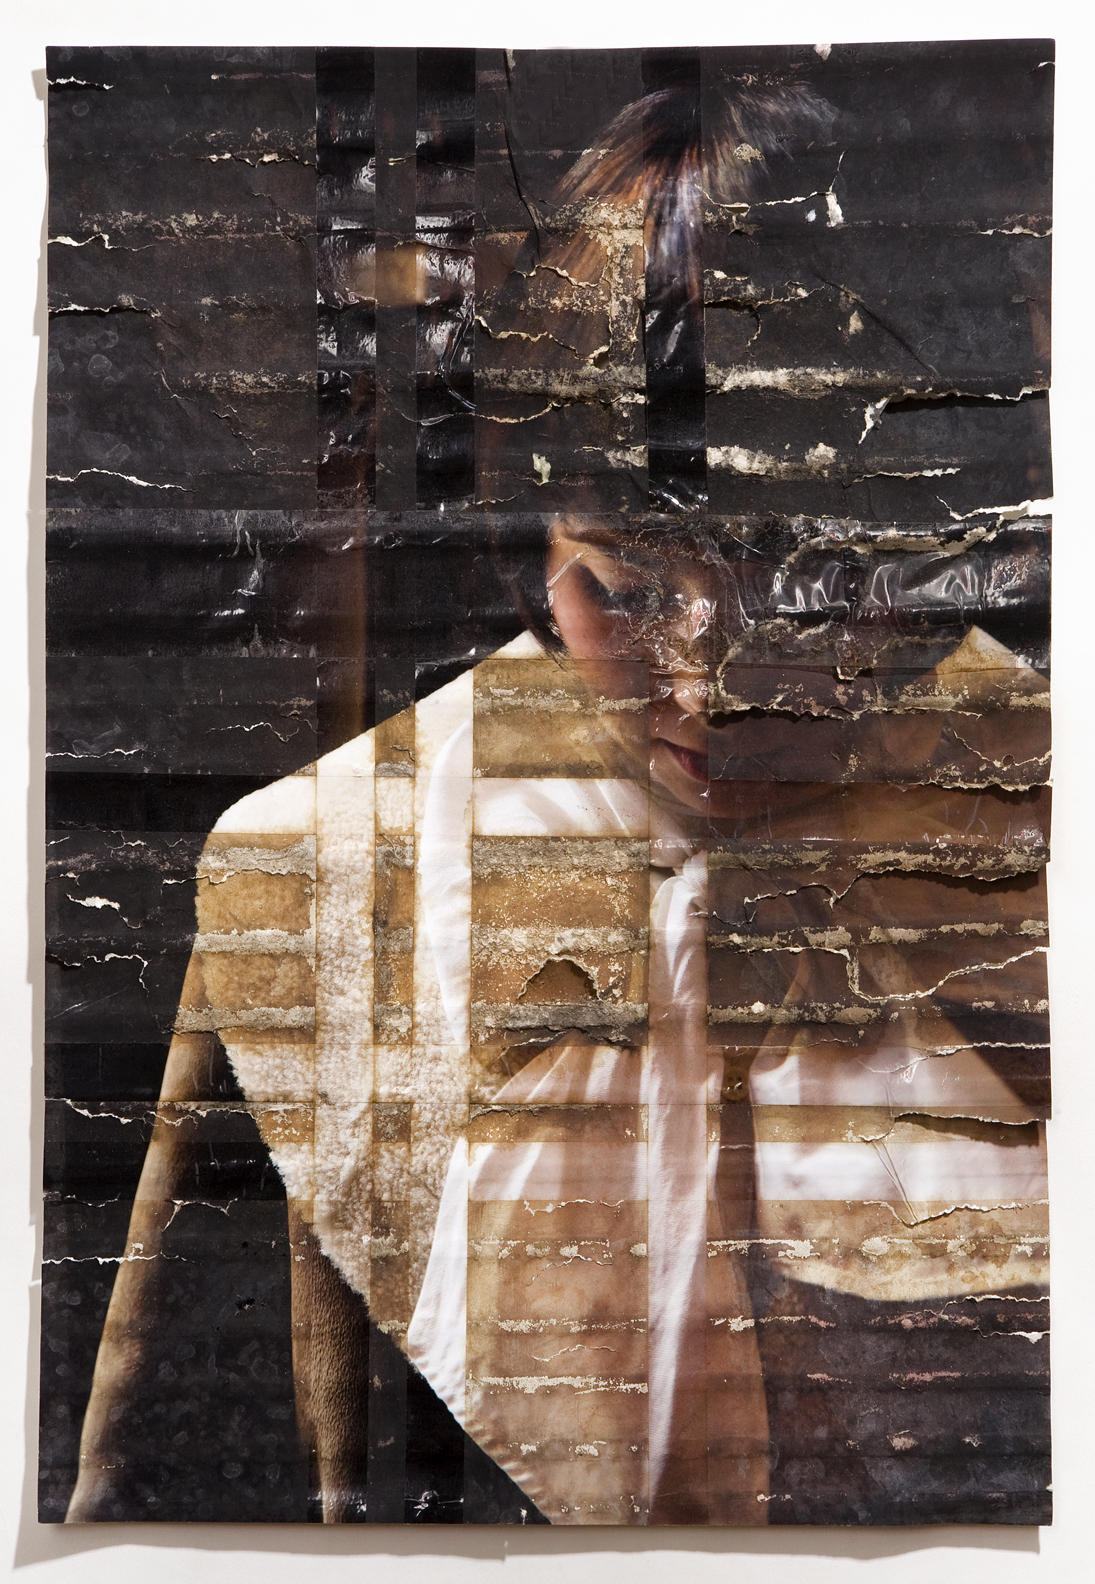 "Mara Capps, inkjet print, packing tape, coffee, coffee grounds, milk, 13""x19"", 2010"